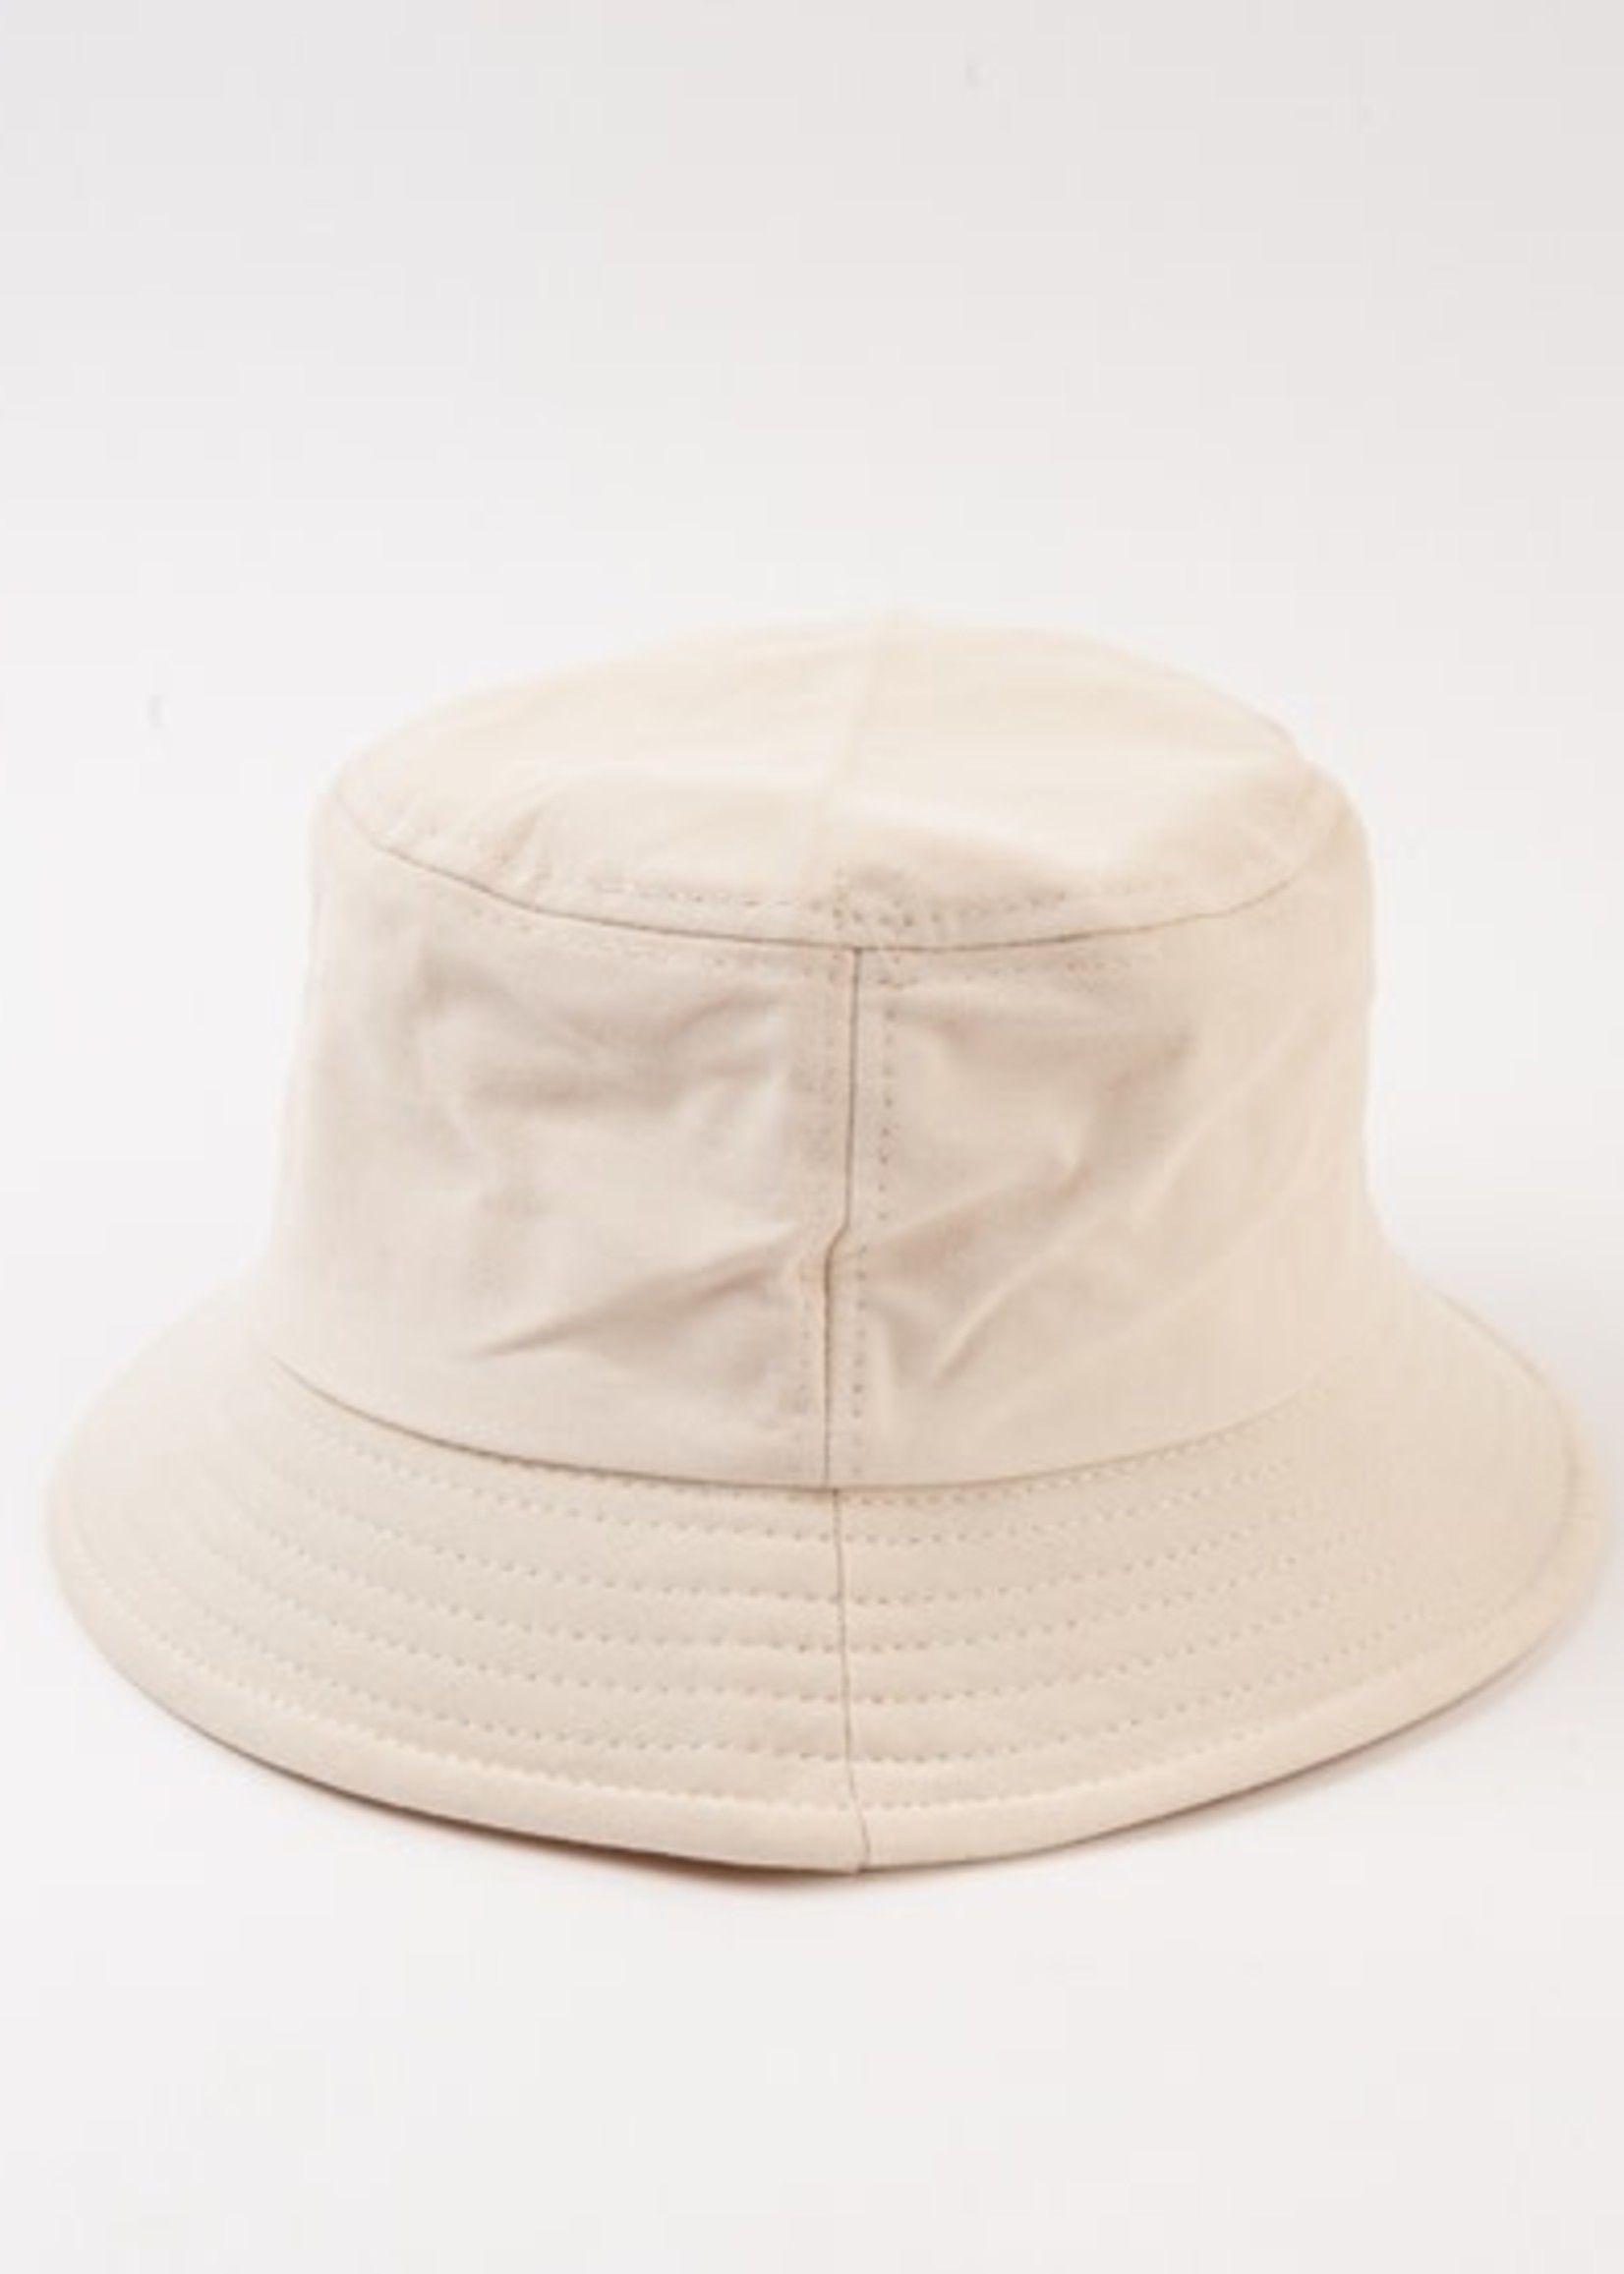 Lucca Couture ROCA CANVAS Bucket Hat - NATURAL